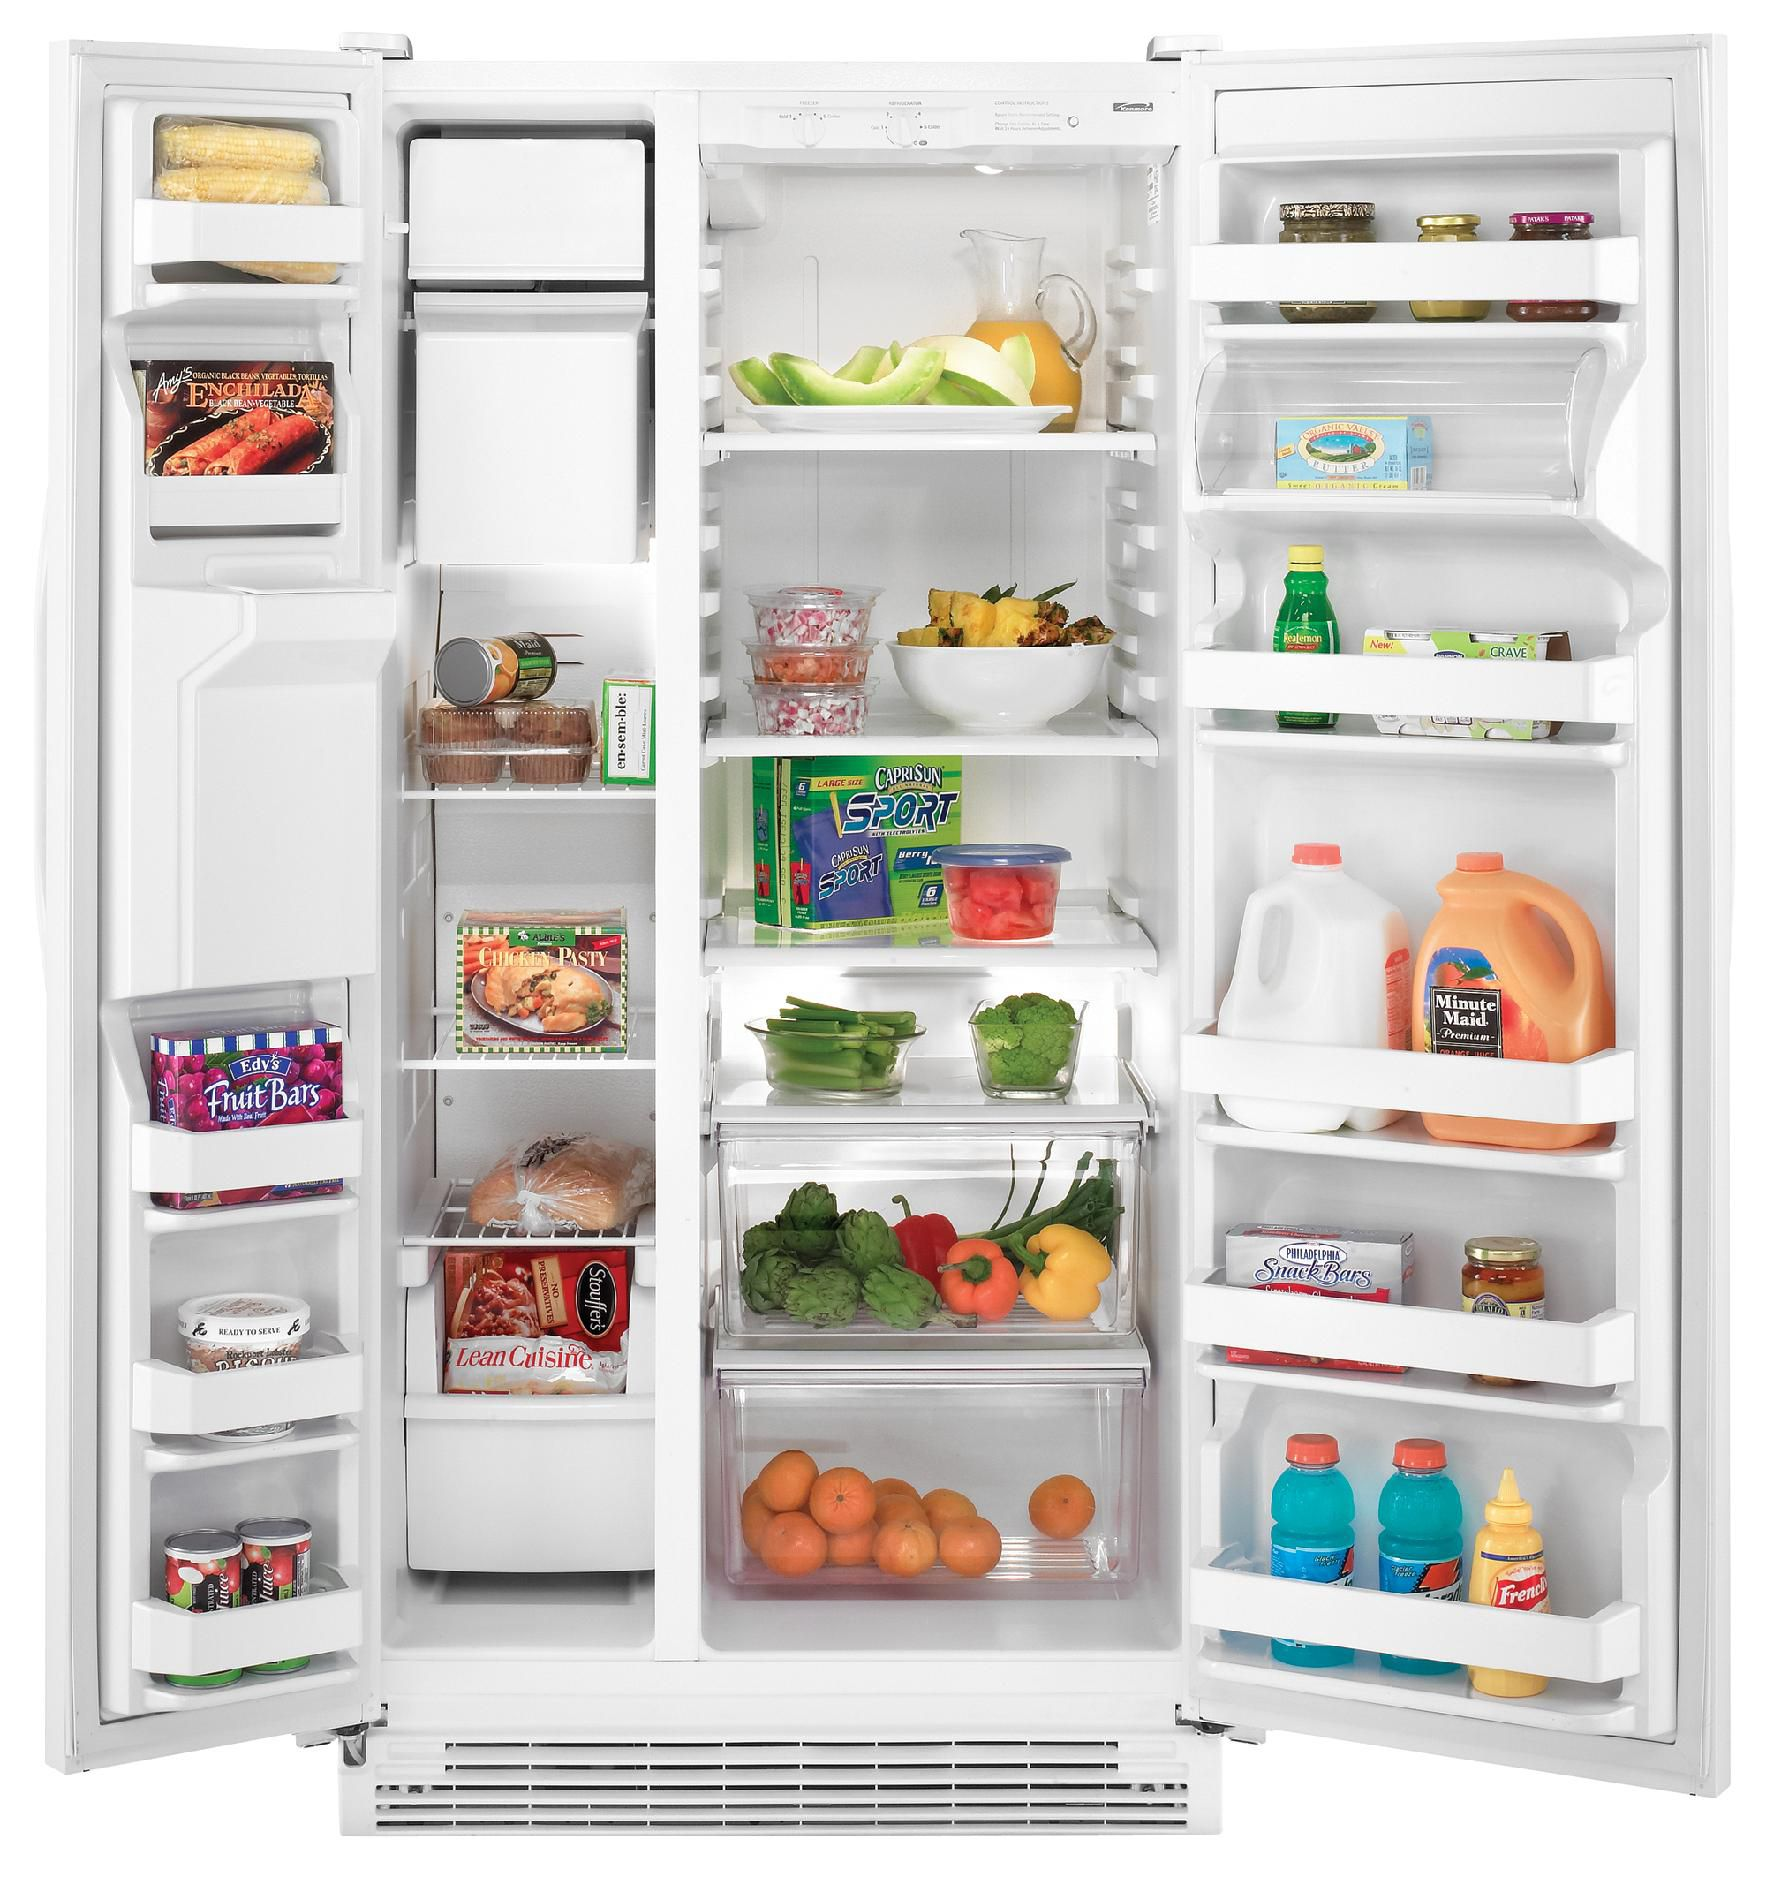 Kenmore 22.0 cu. ft. Side-by-Side Refrigerator - White